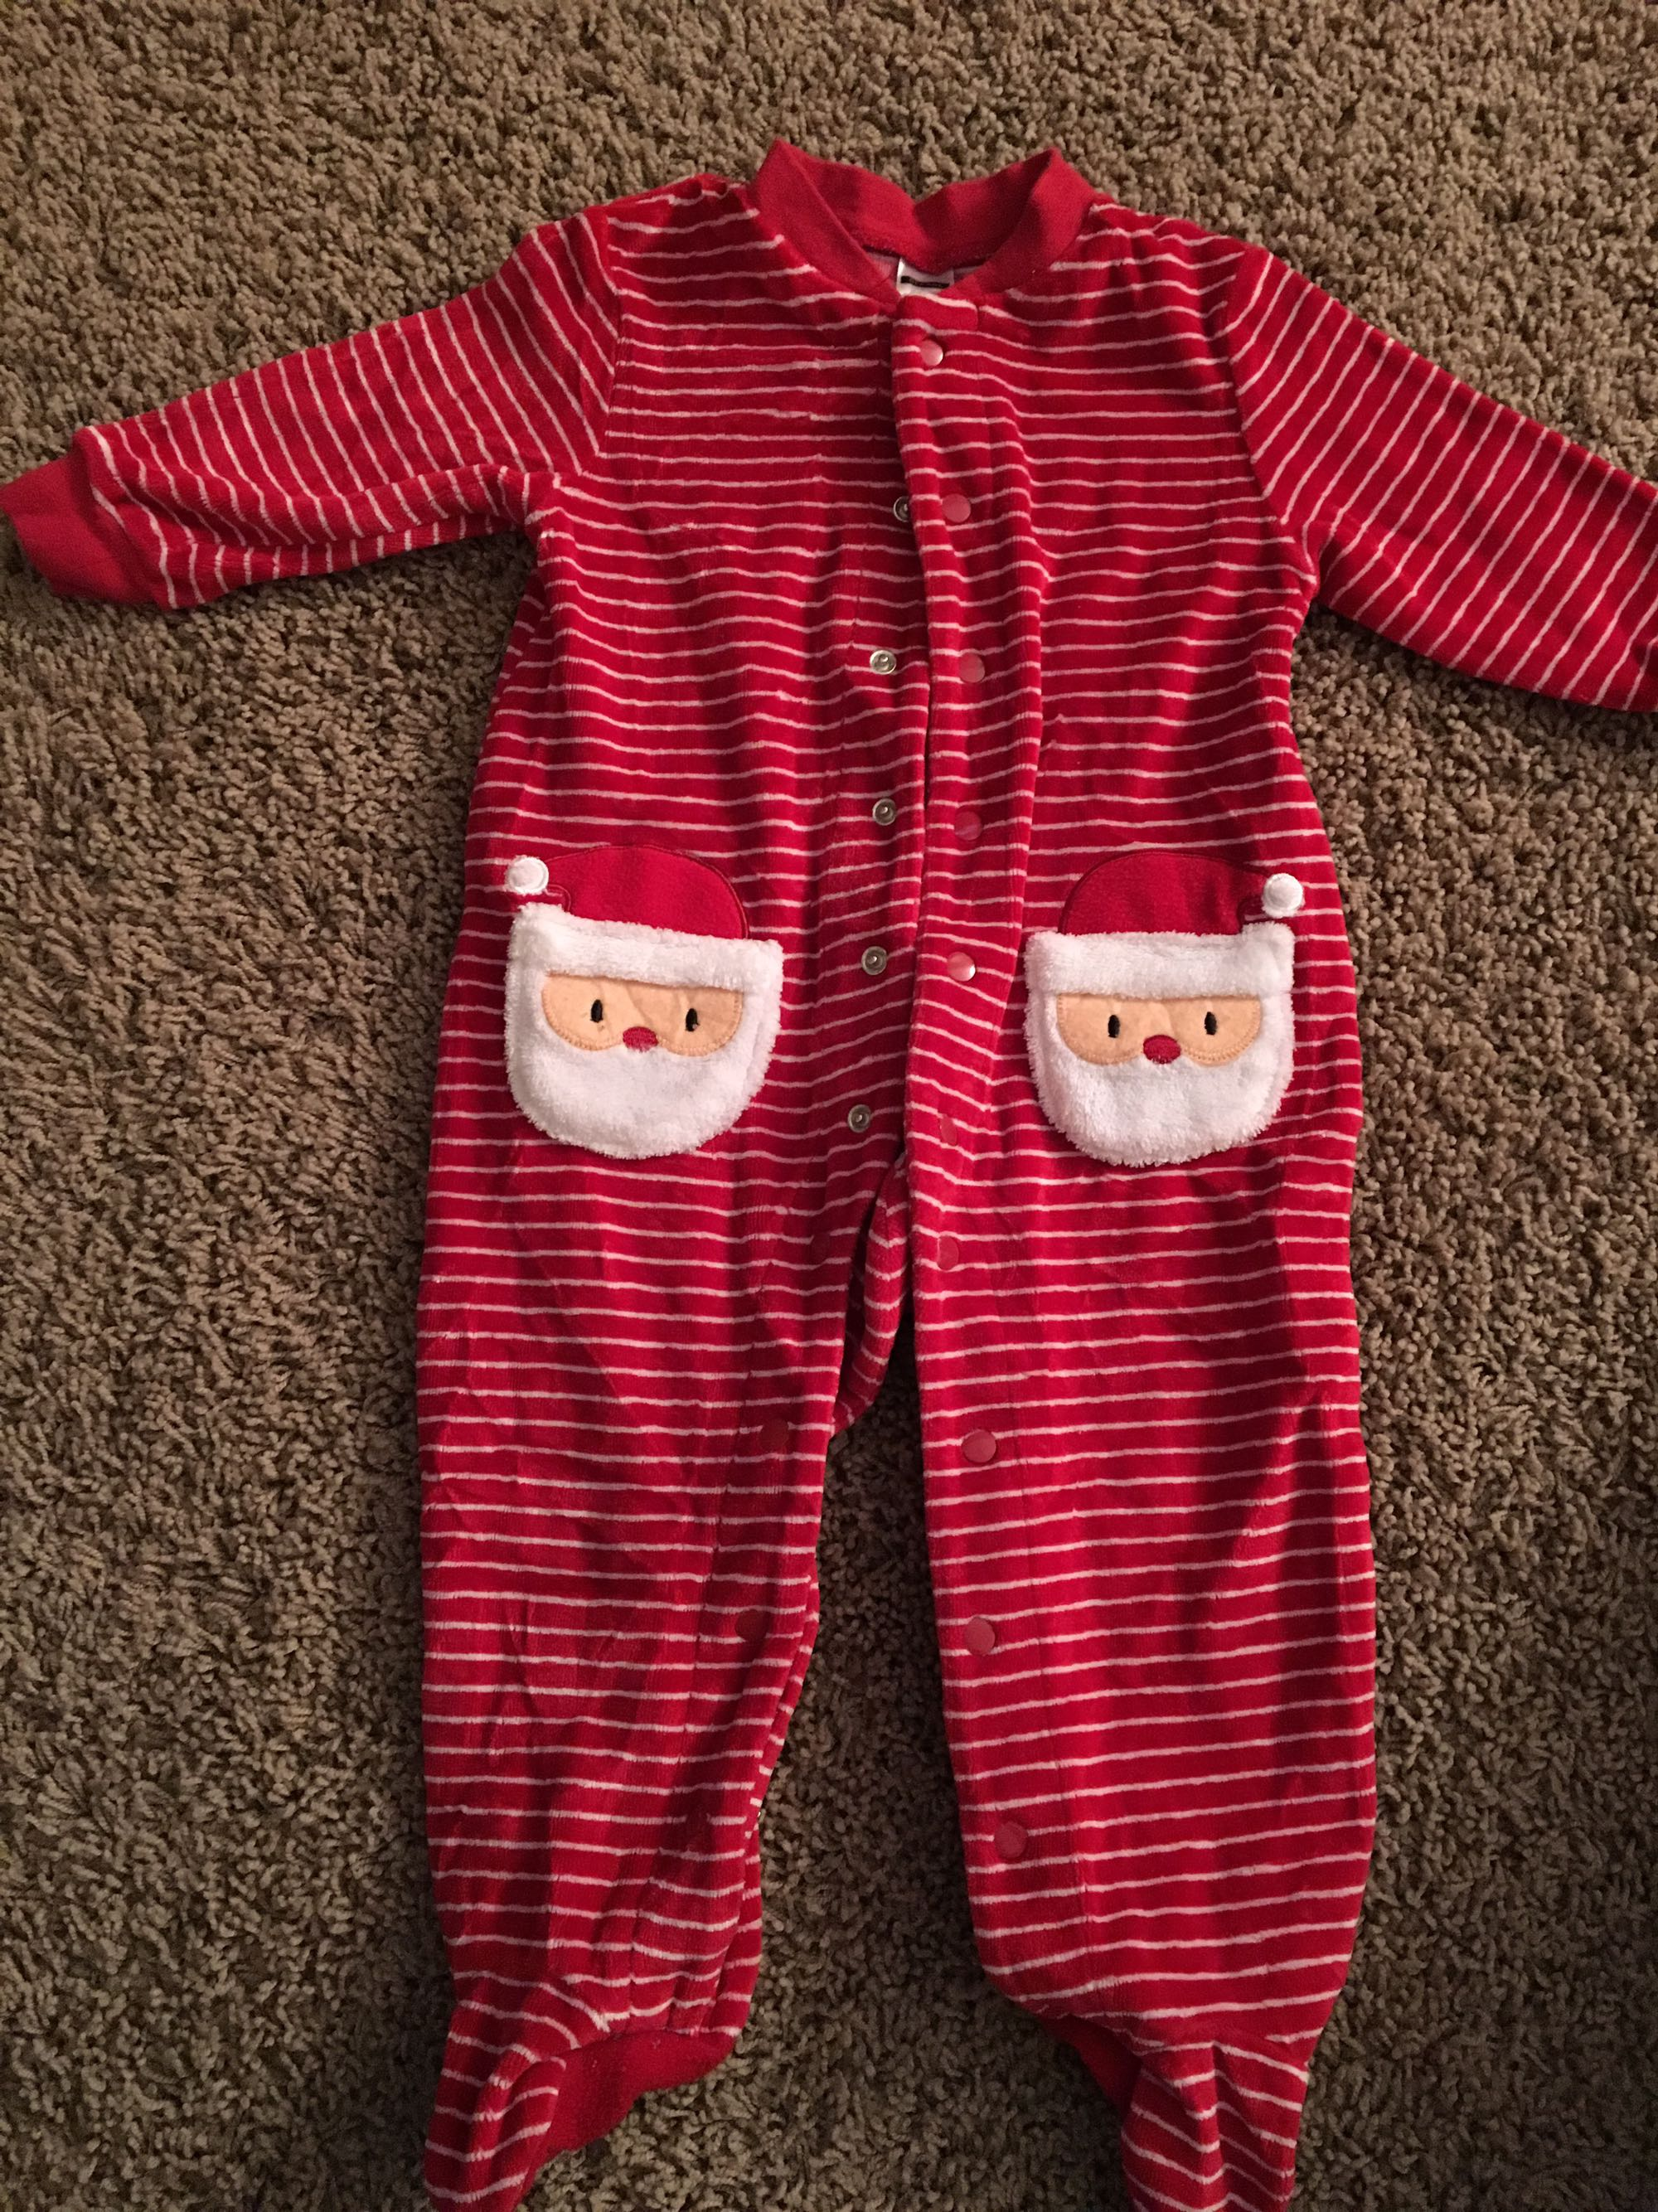 Super cute Santa sleeper! 12 months